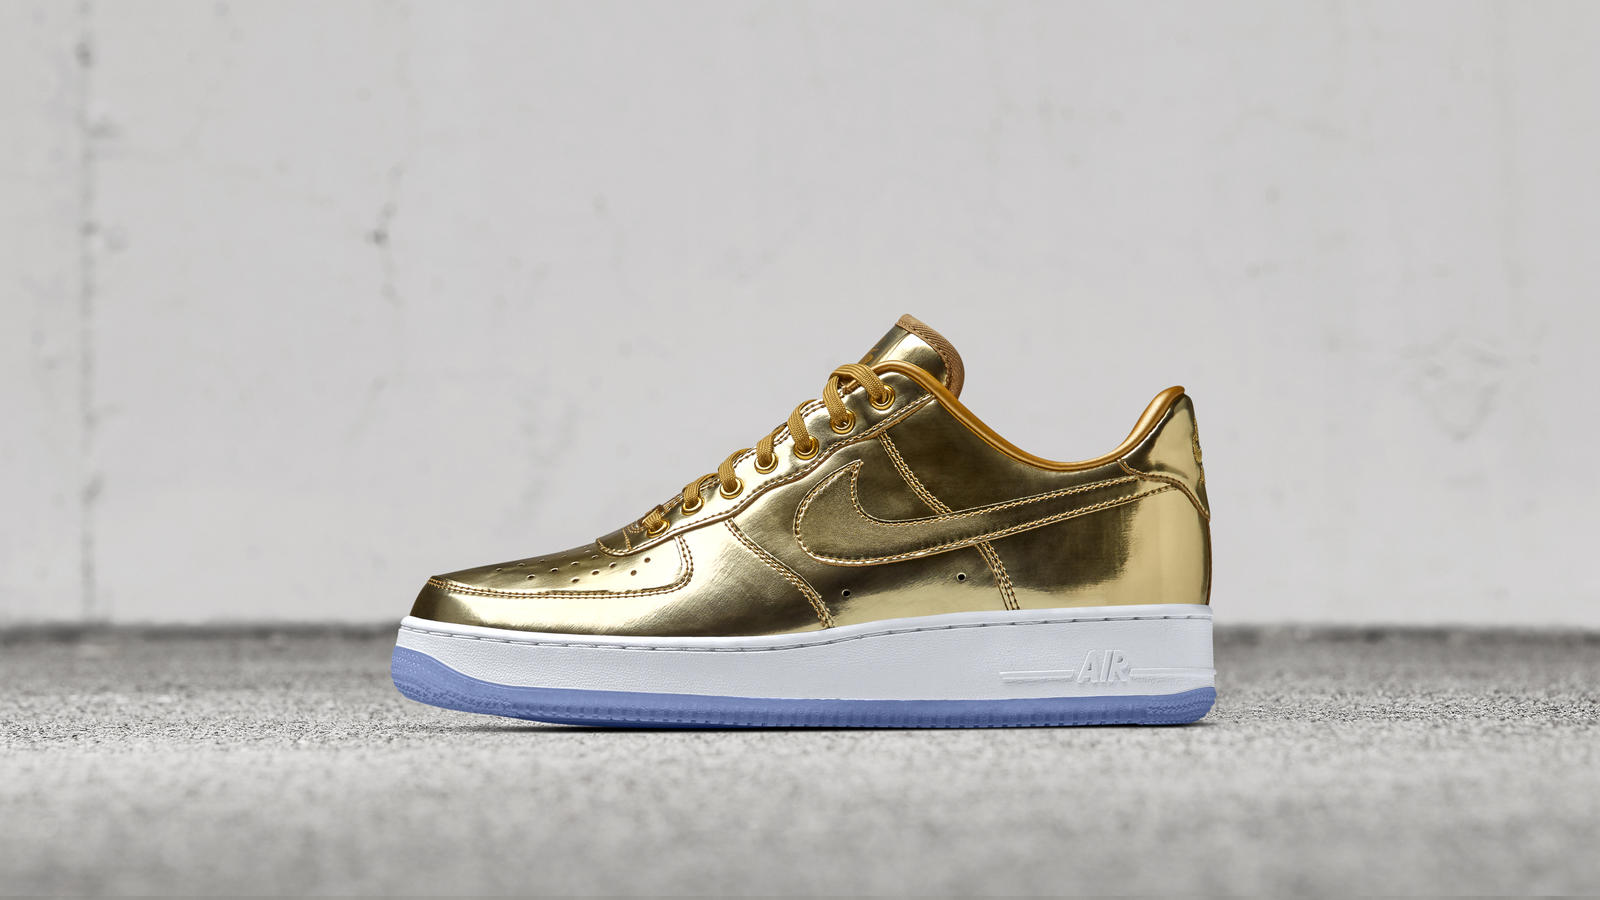 Five Models Aim for 'Unlimited Glory' on NikeiD-4